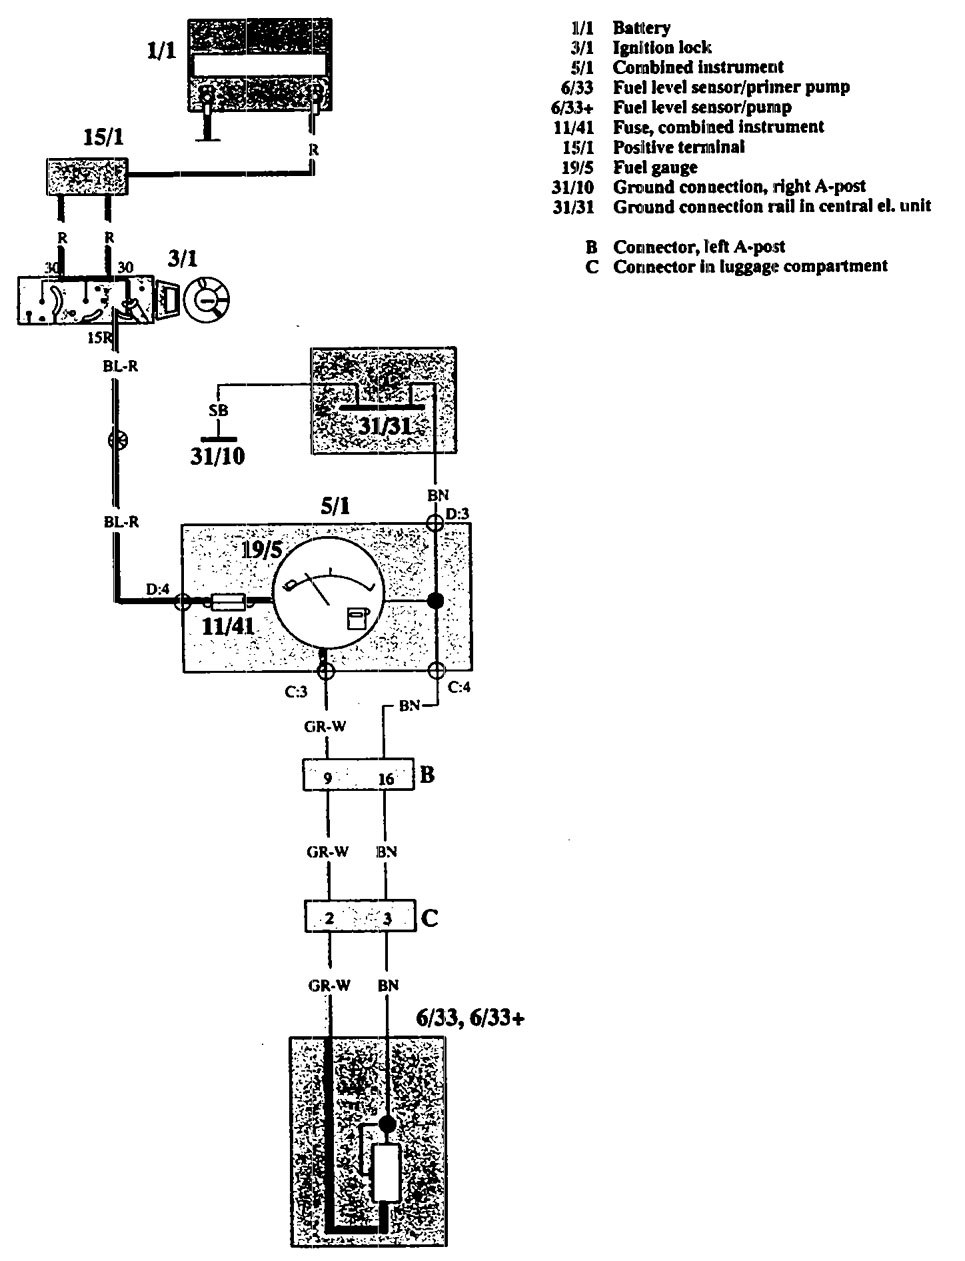 Wiring Diagram For 1990 Volvo 740 : Volvo  wiring diagrams fuel warning